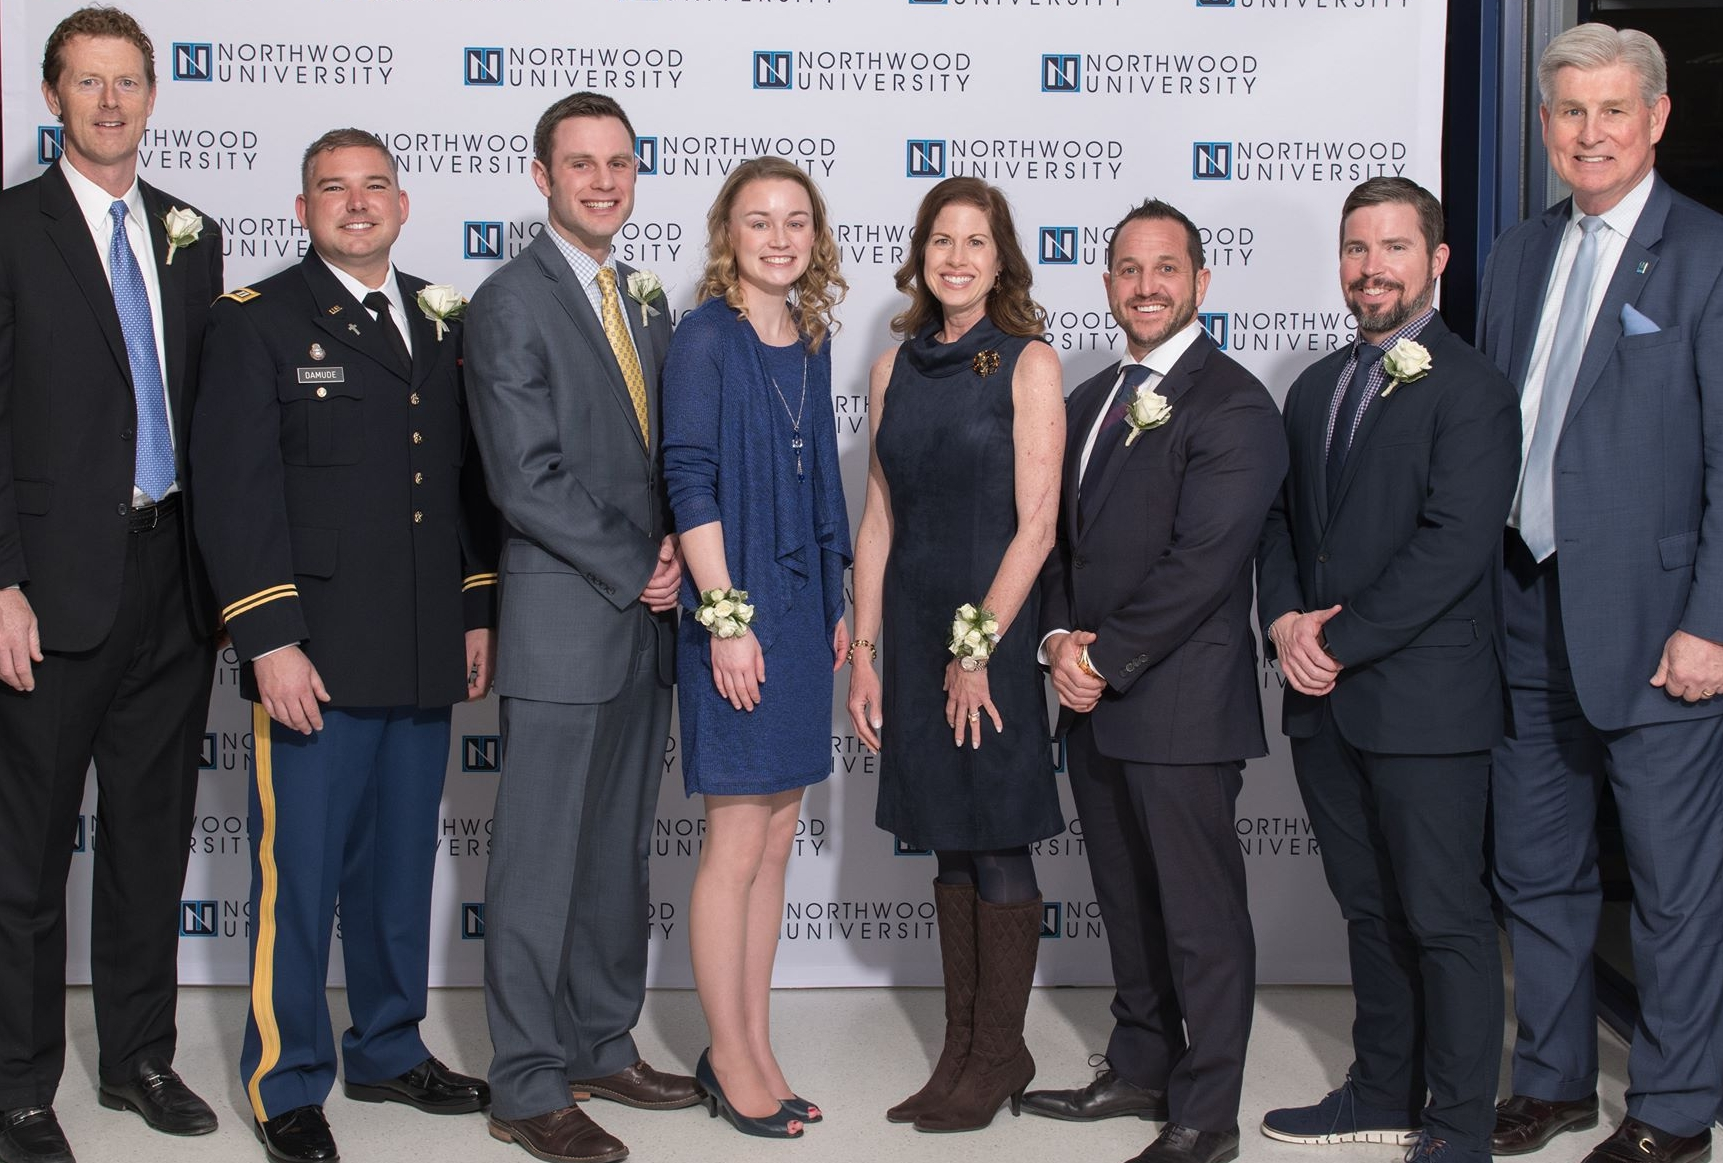 Celebrating Northwood University's Outstanding Alumni Awards with President Keith Pretty are awardees (l-r) Paul Reitz, James Damude, Dan Waskiewicz, Kristina Waskiewicz, Jennifer Williams, Ryan LaFontaine, and Kelly Cheeseman.